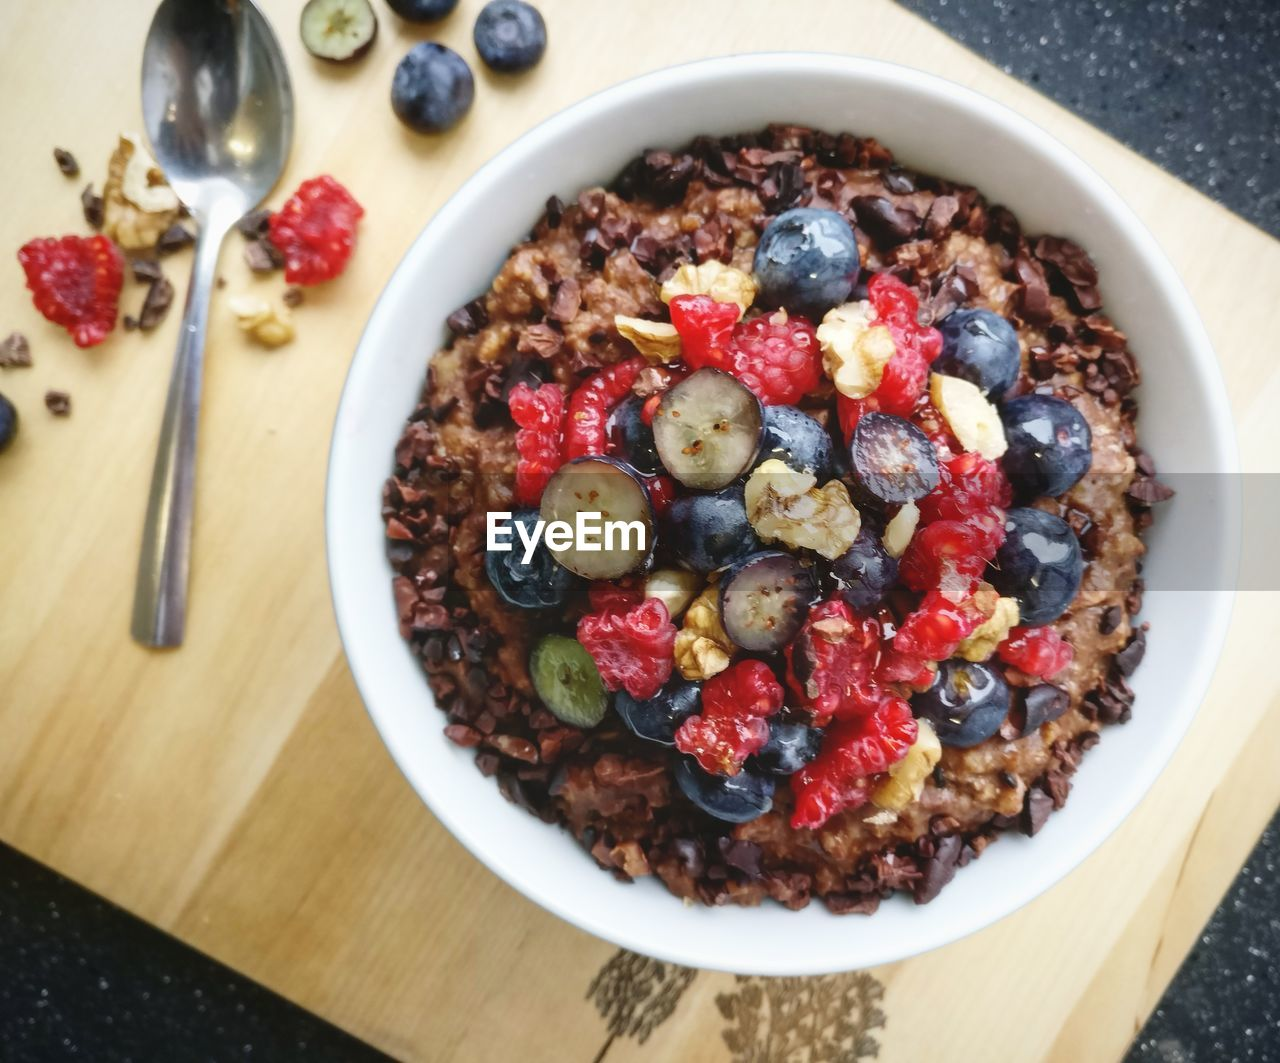 food, food and drink, healthy eating, berry fruit, freshness, wellbeing, bowl, blueberry, fruit, breakfast, table, meal, breakfast cereal, ready-to-eat, high angle view, directly above, eating utensil, kitchen utensil, raspberry, indoors, no people, oats - food, temptation, porridge